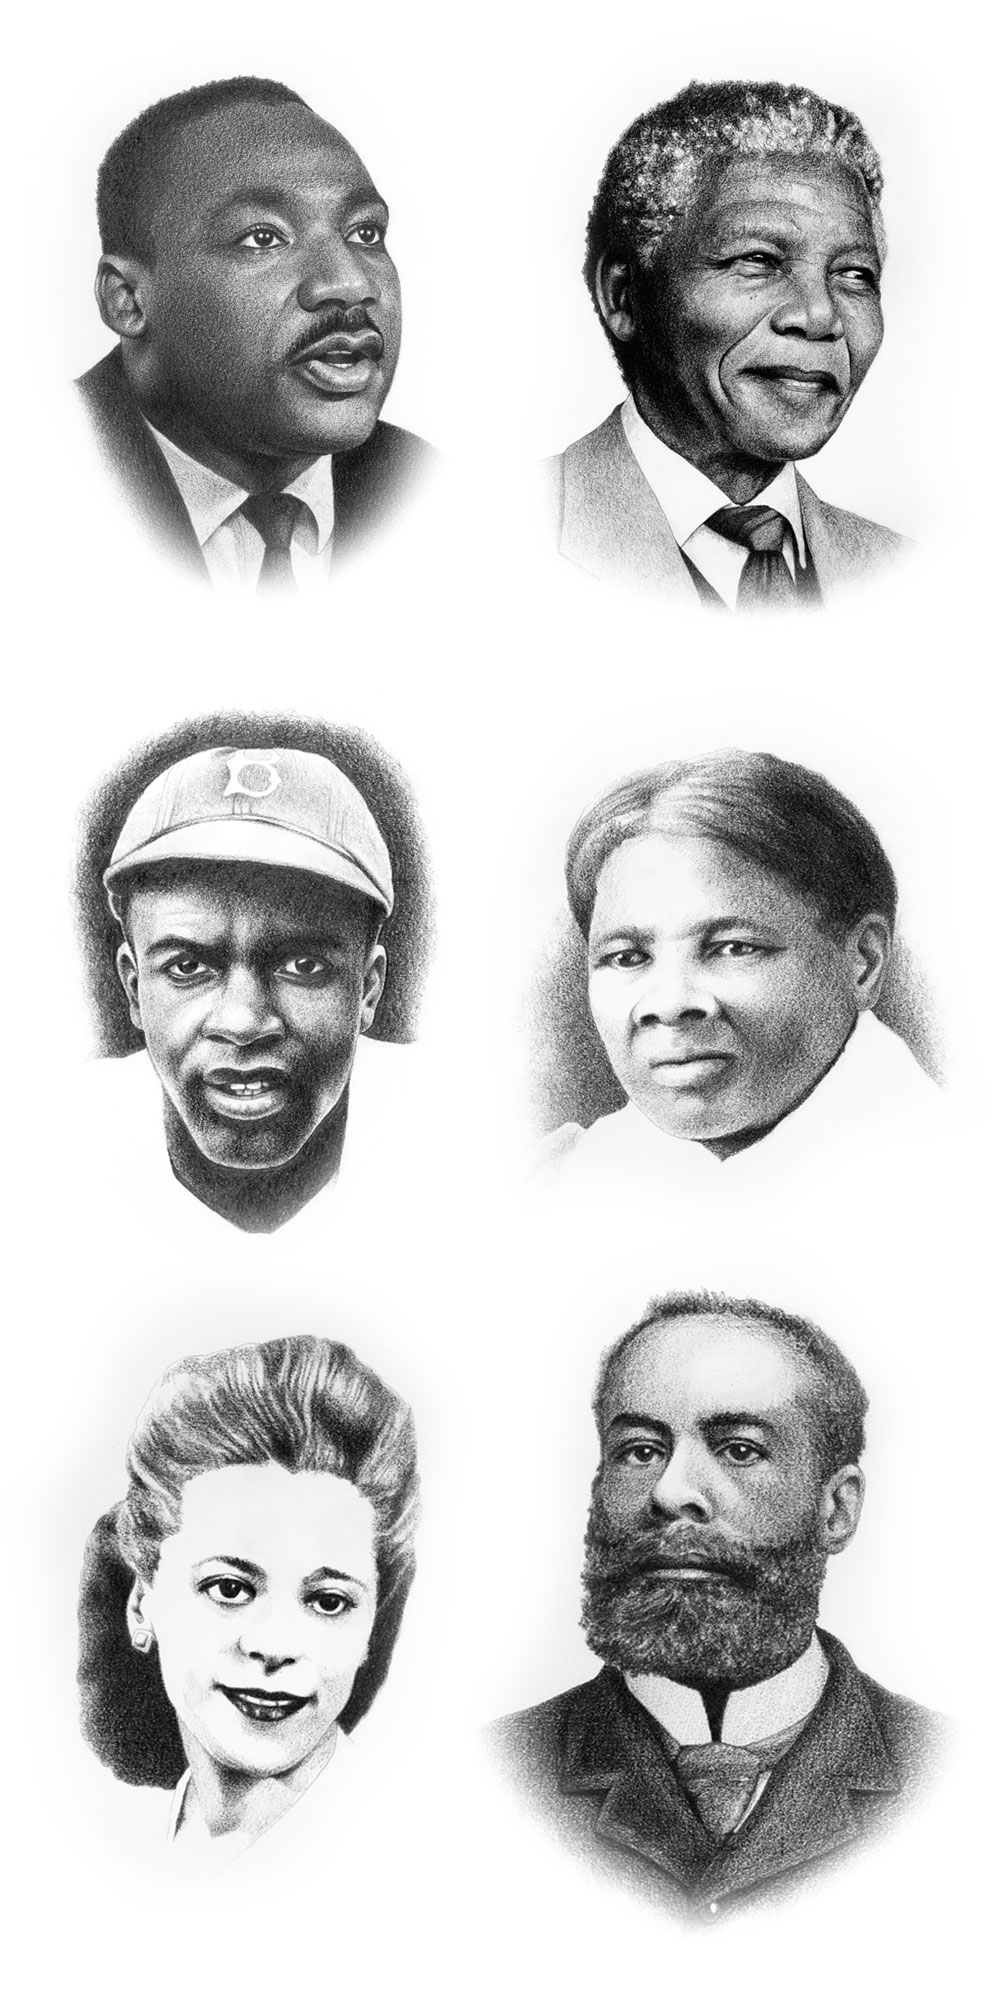 Black History Month Portraits by Elden Creative Group | Martin Luther King, Jr., Nelson Mandela, Jackie Robinson, Harriet Tubman, Viola Desmond, Elijah McCoy